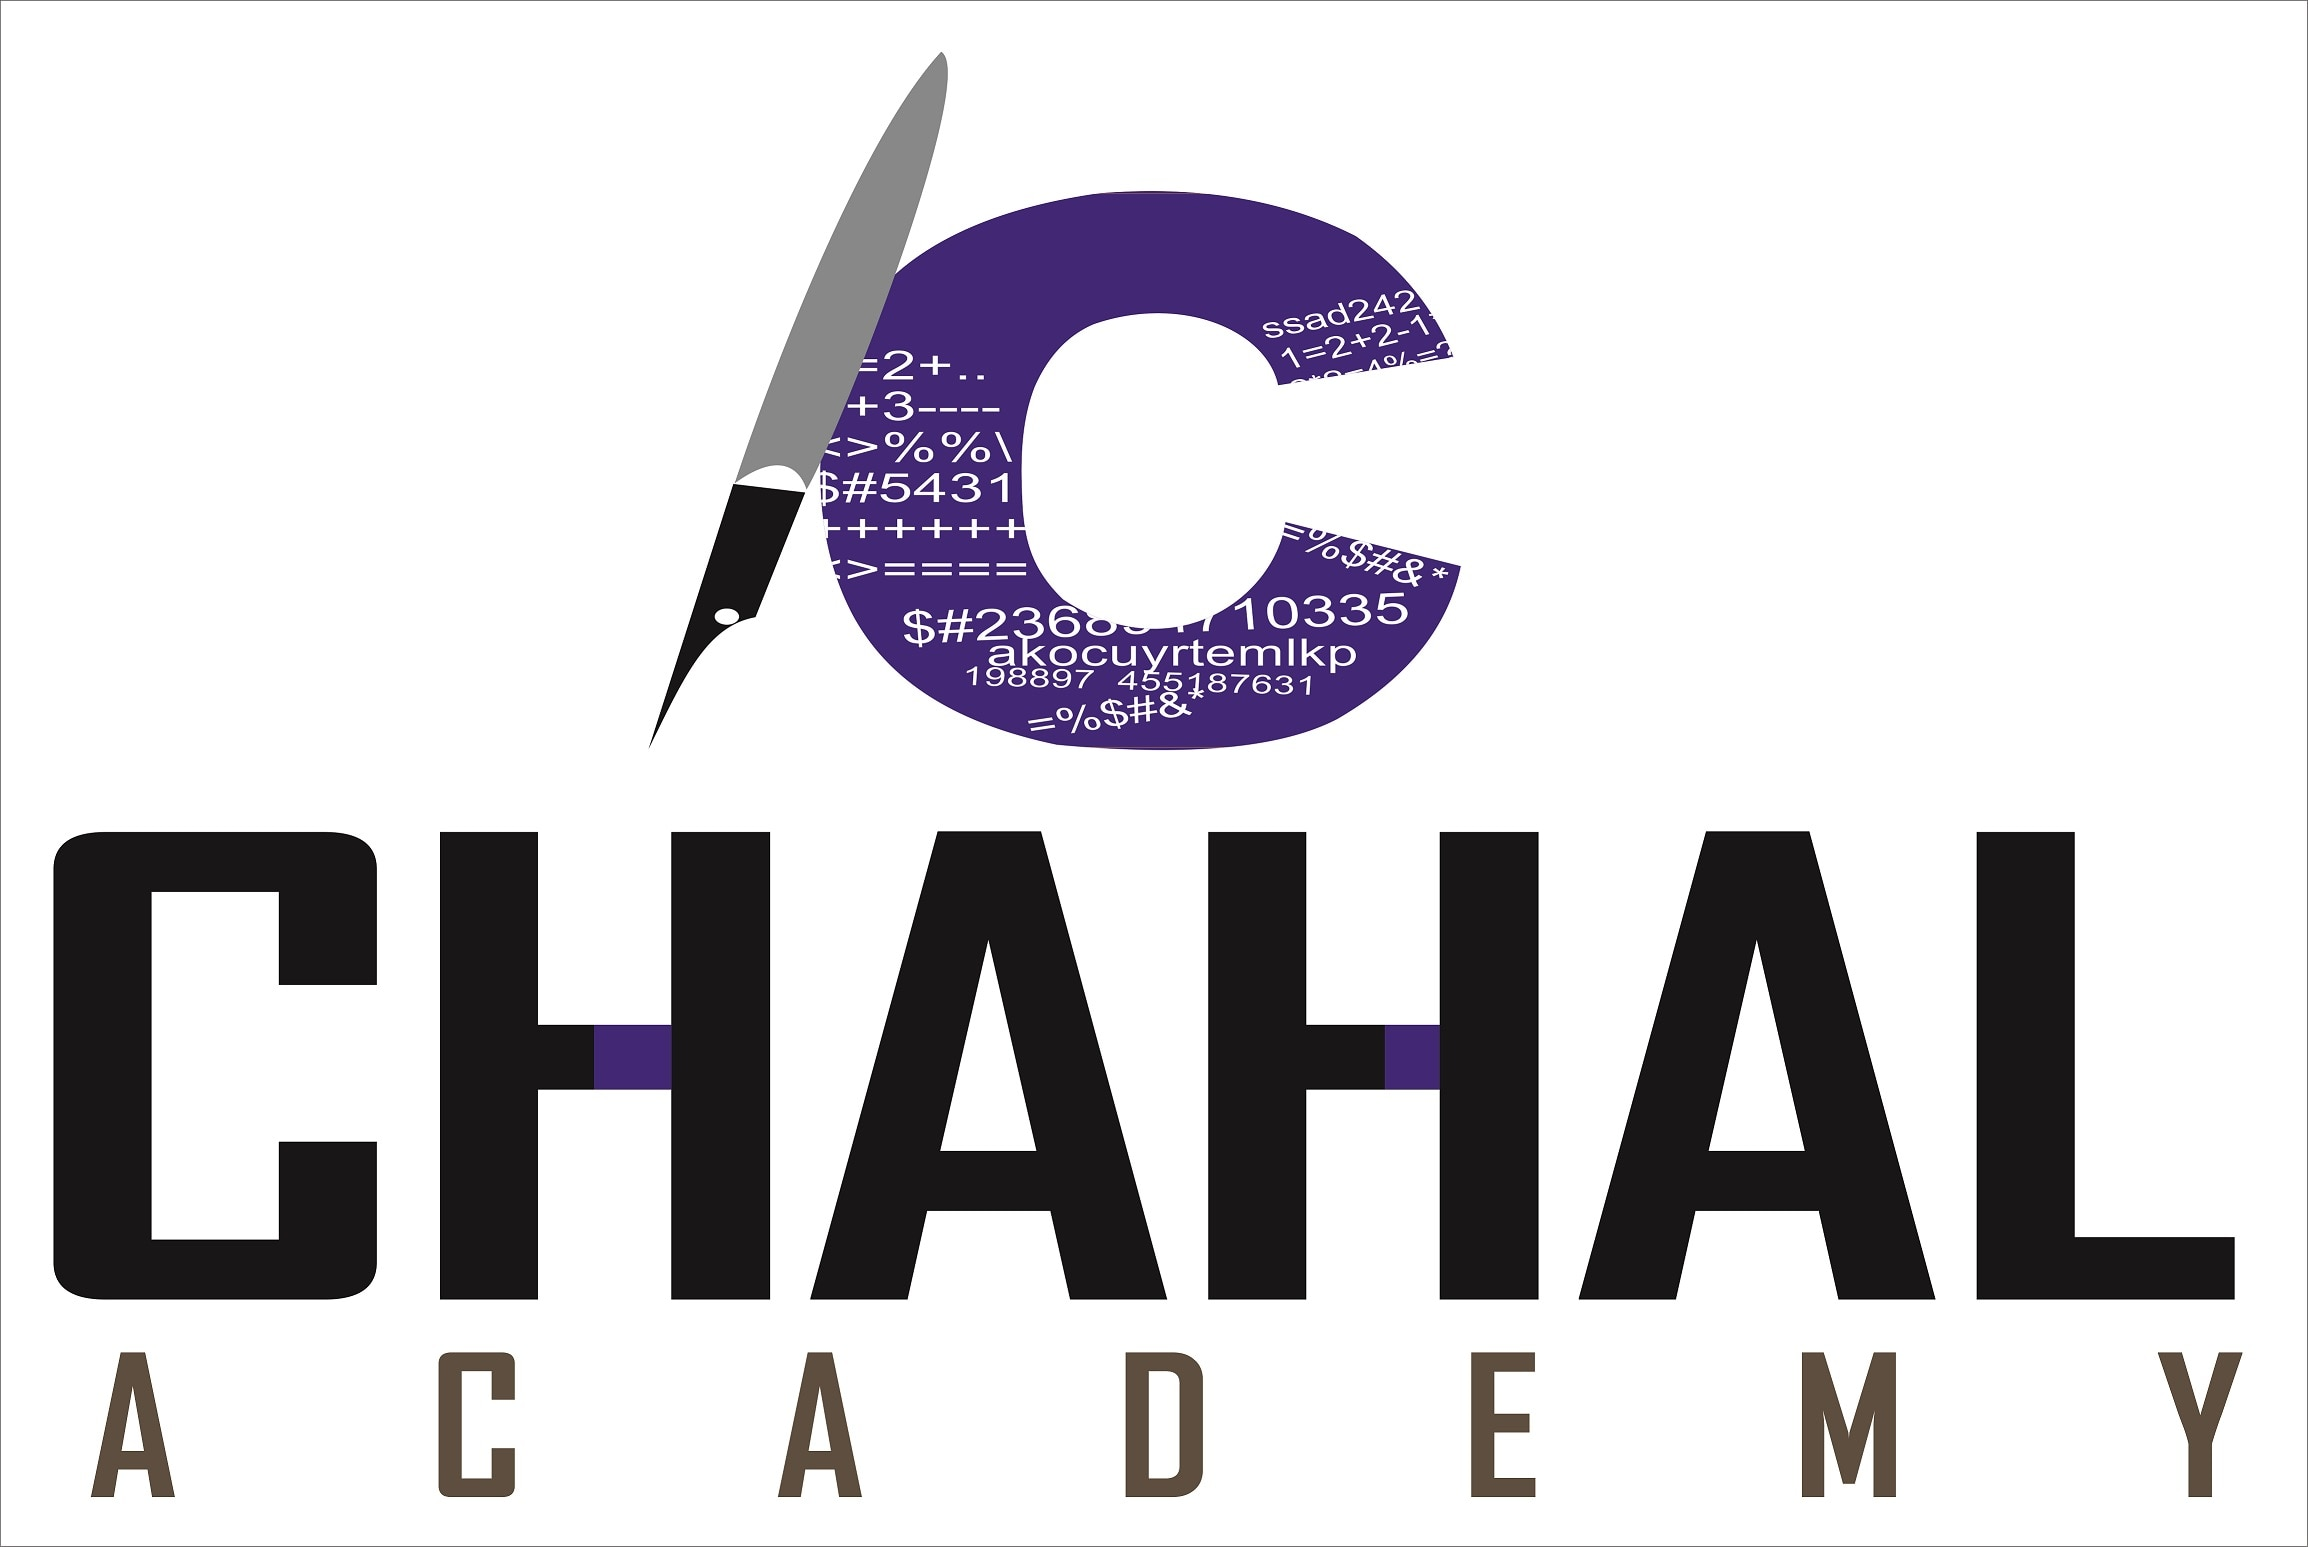 Chahal Academy is one of the leading coaching institute for UPSC Coaching in Ahmedabad and Gujarat. We have Expert faculties with us who will provide you best coaching for IAS examination